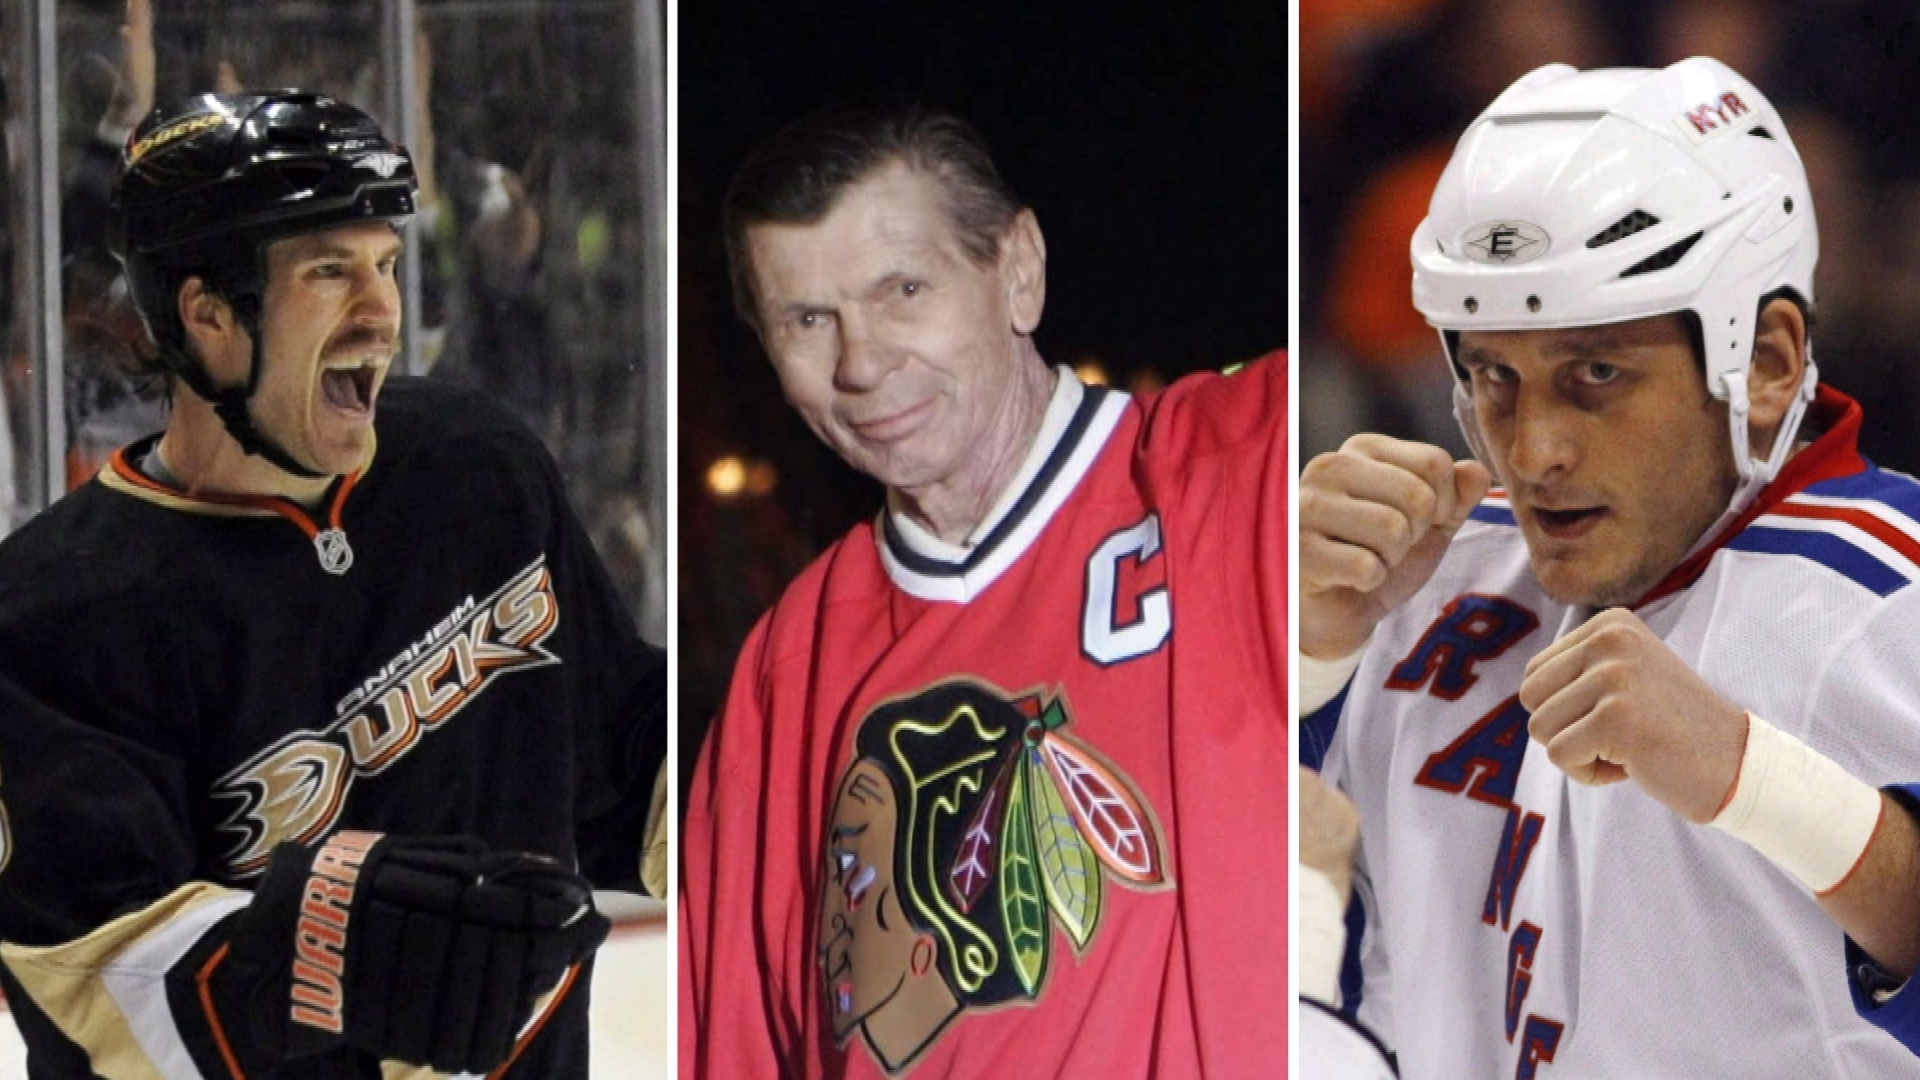 Deceased NHLers Steve Montador, Stan Mikita and Derek Boogaard were all found to have the degenerative brain disease chronic traumatic encephalopathy (CTE) in their brains after post-mortem autopsies. (The Canadian Press/AP)